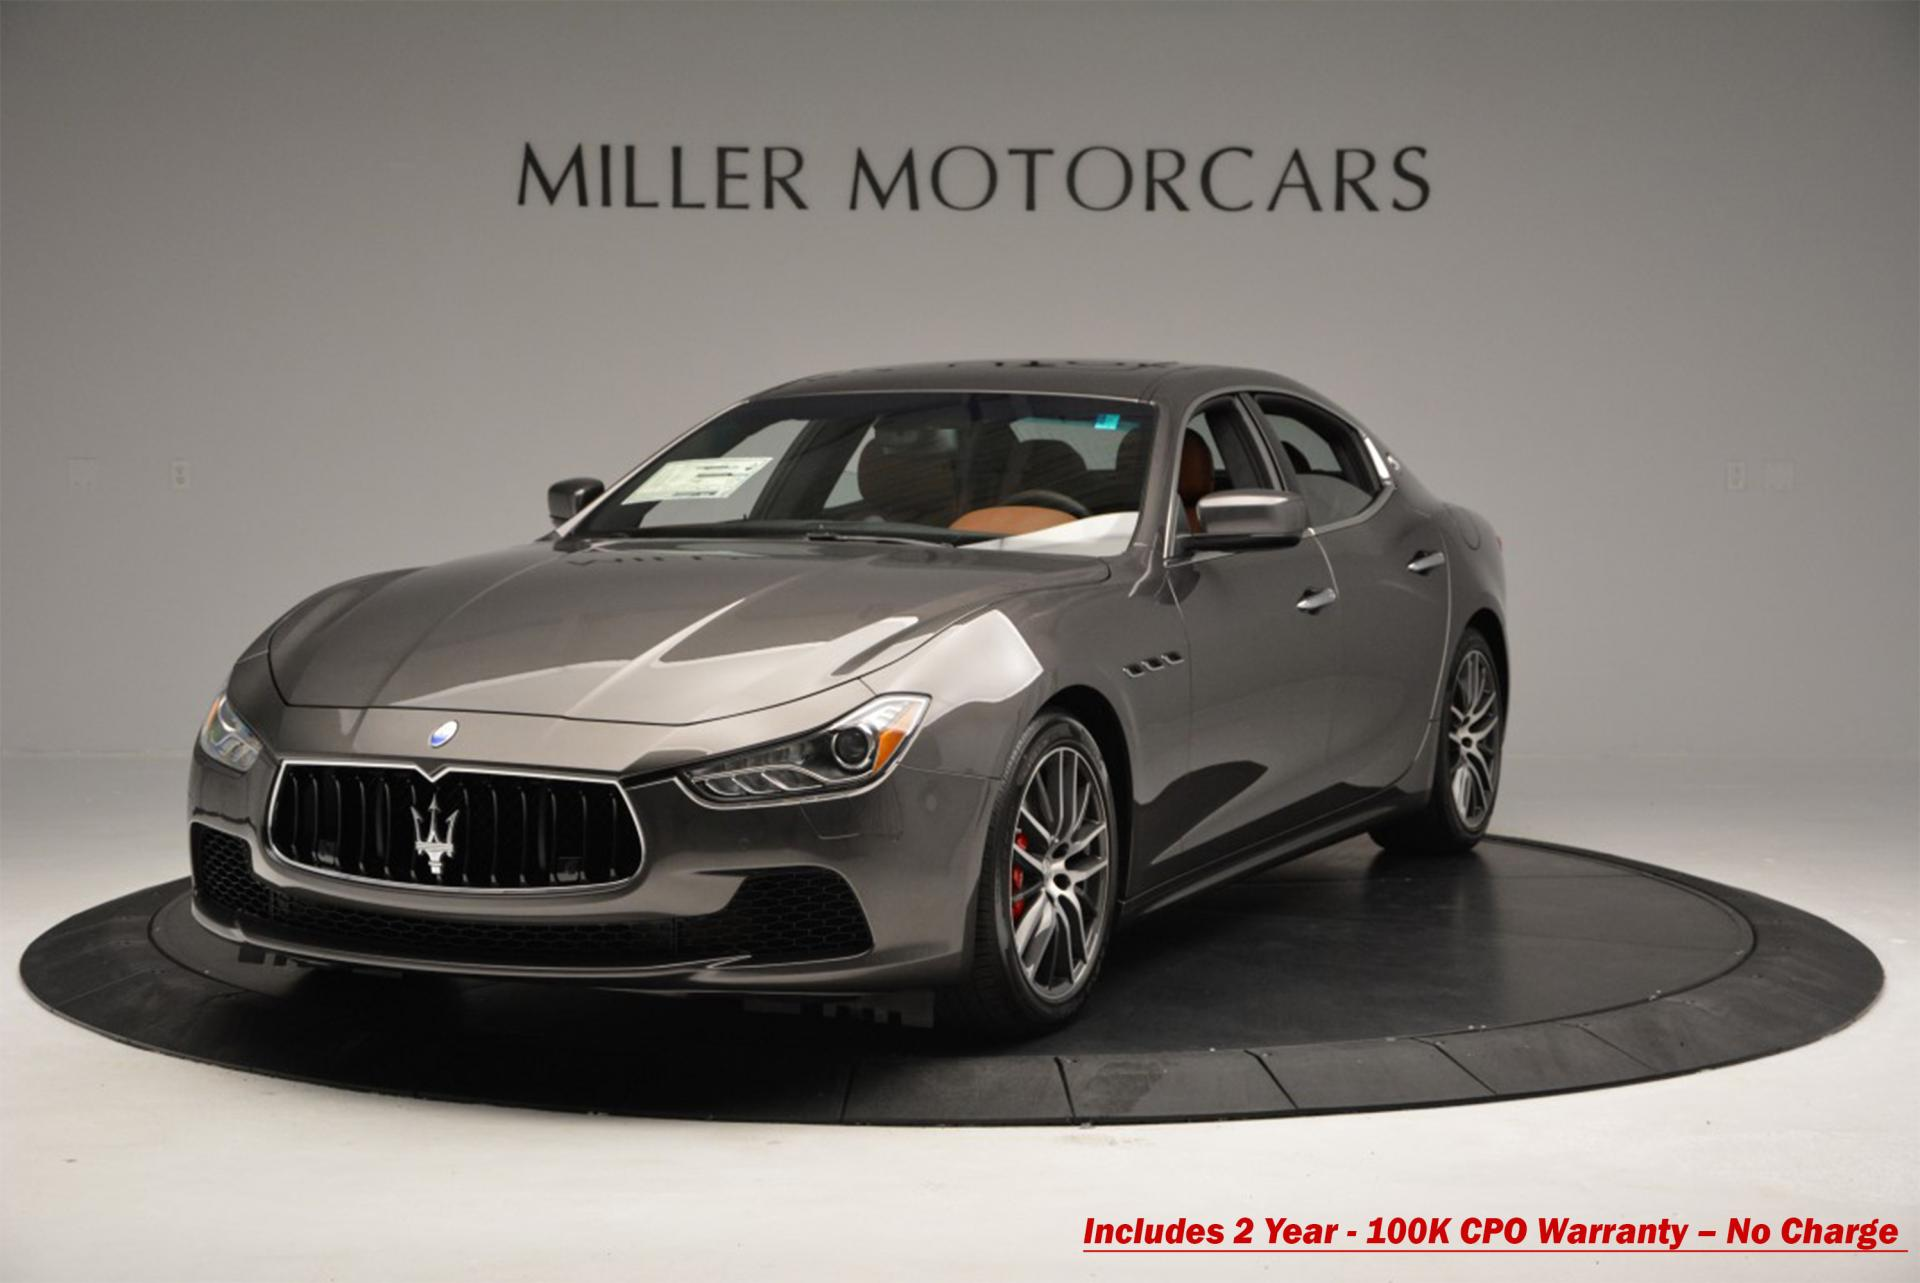 Used 2016 Maserati Ghibli S Q4 For Sale In Greenwich, CT 191_main